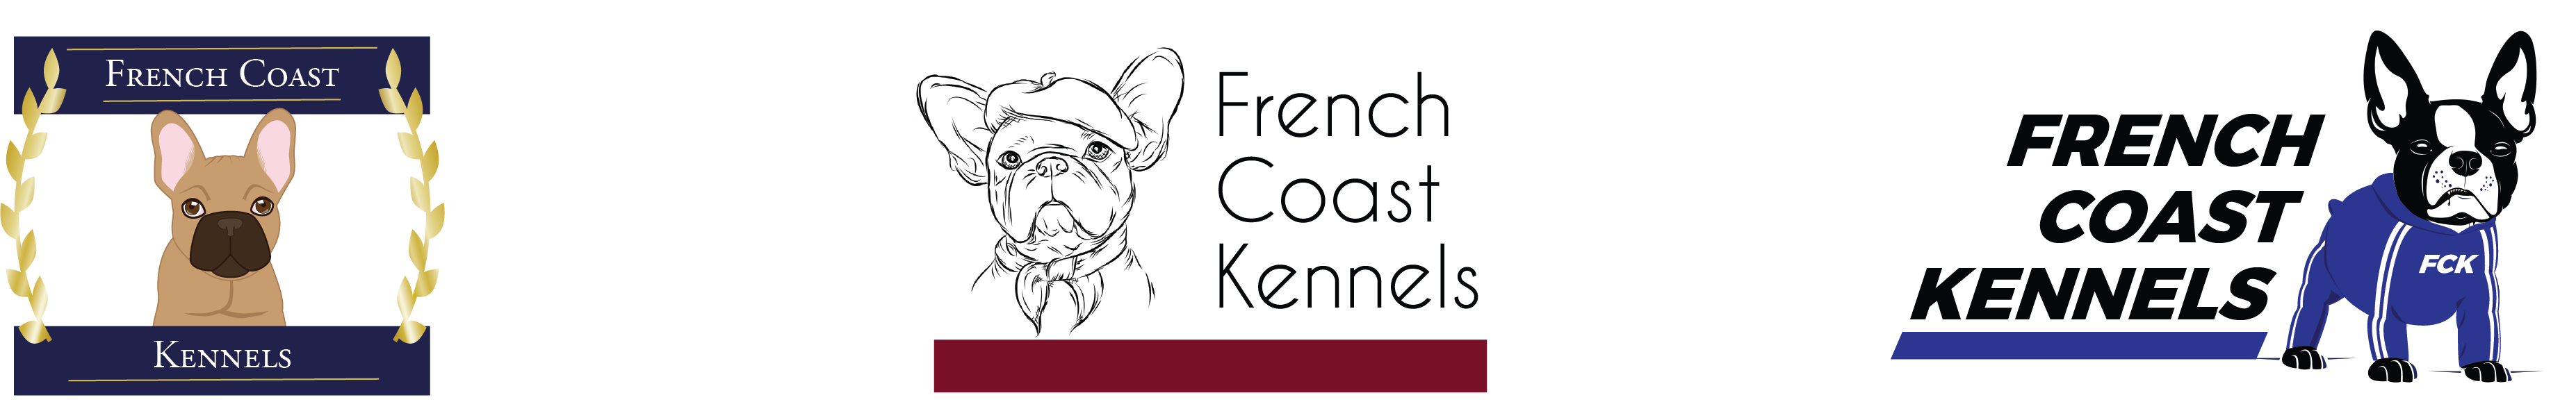 French Coast Kennels logo design